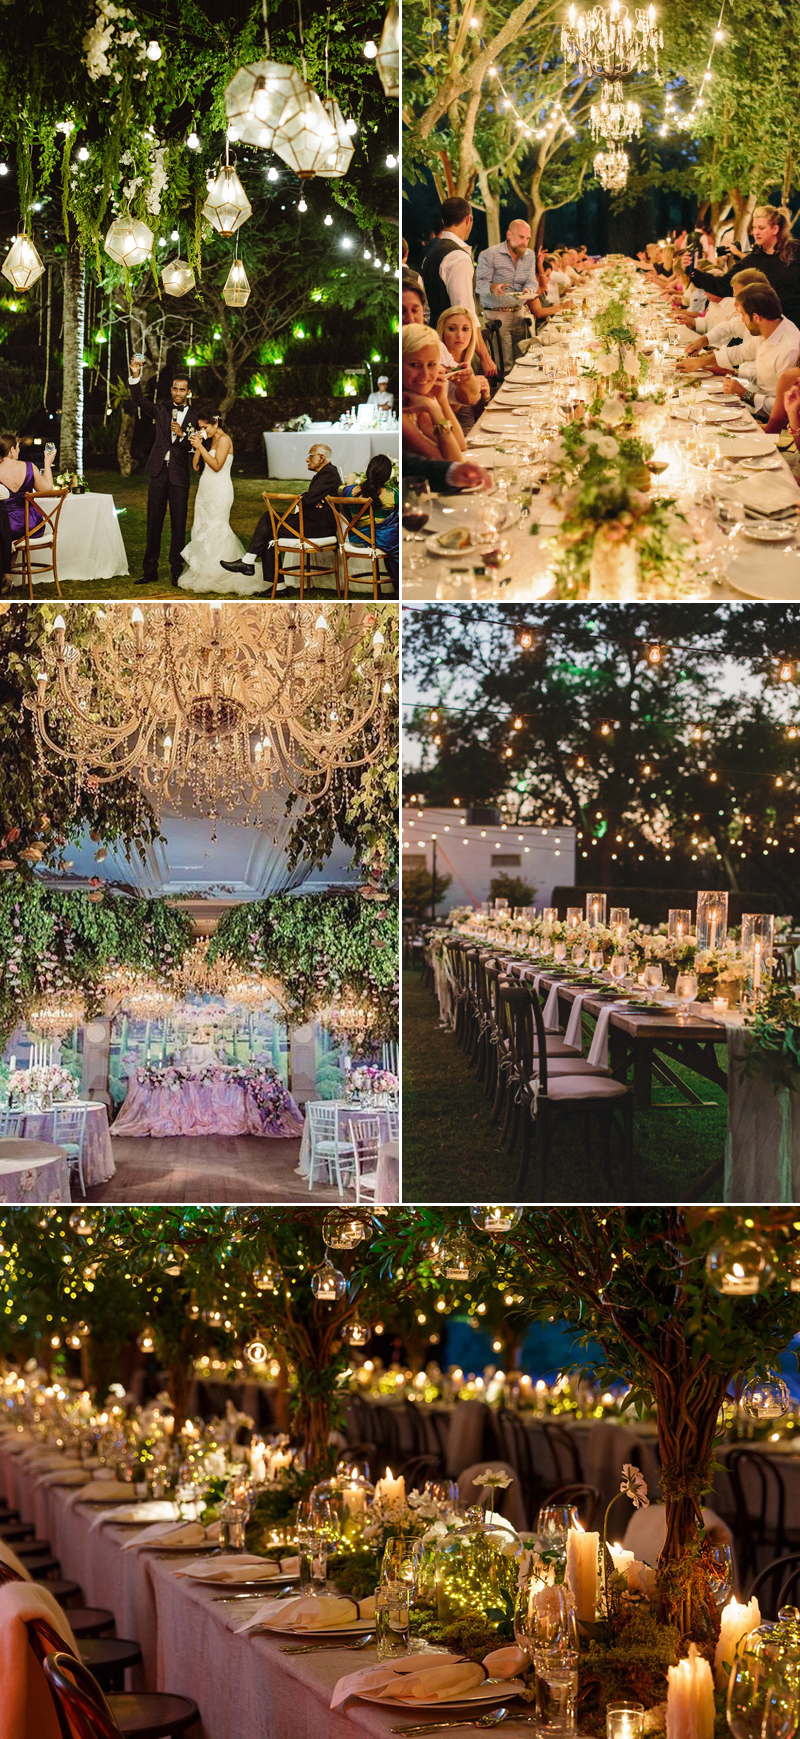 32 Decoration Ideas to Create a Magical Fairy Tale Reception